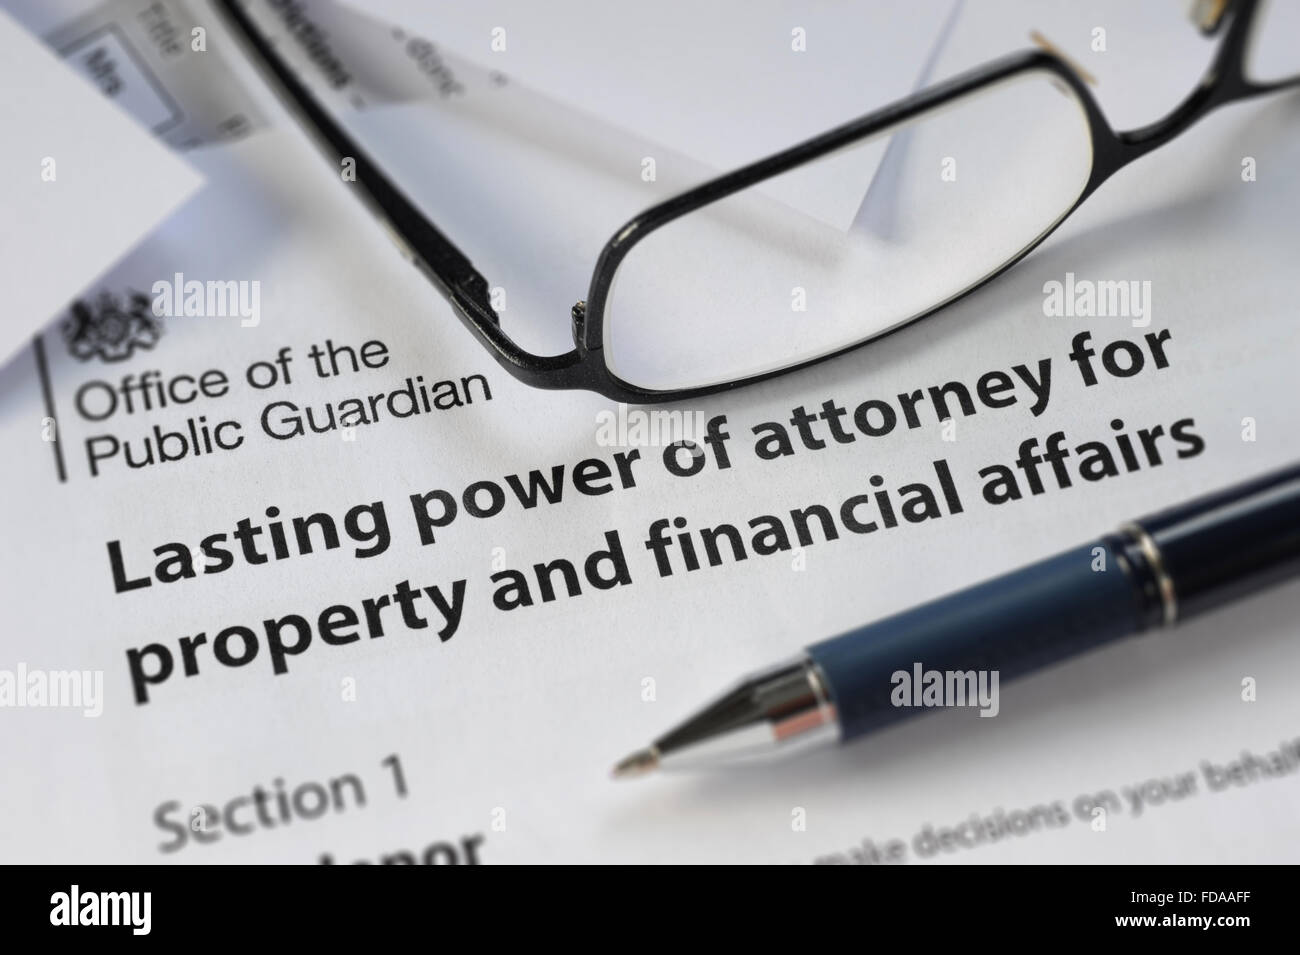 Lasting power of attorney form with spectacles pen re property stock lasting power of attorney form with spectacles pen re property financial affairs leaving a will wills legacy testament death uk falaconquin